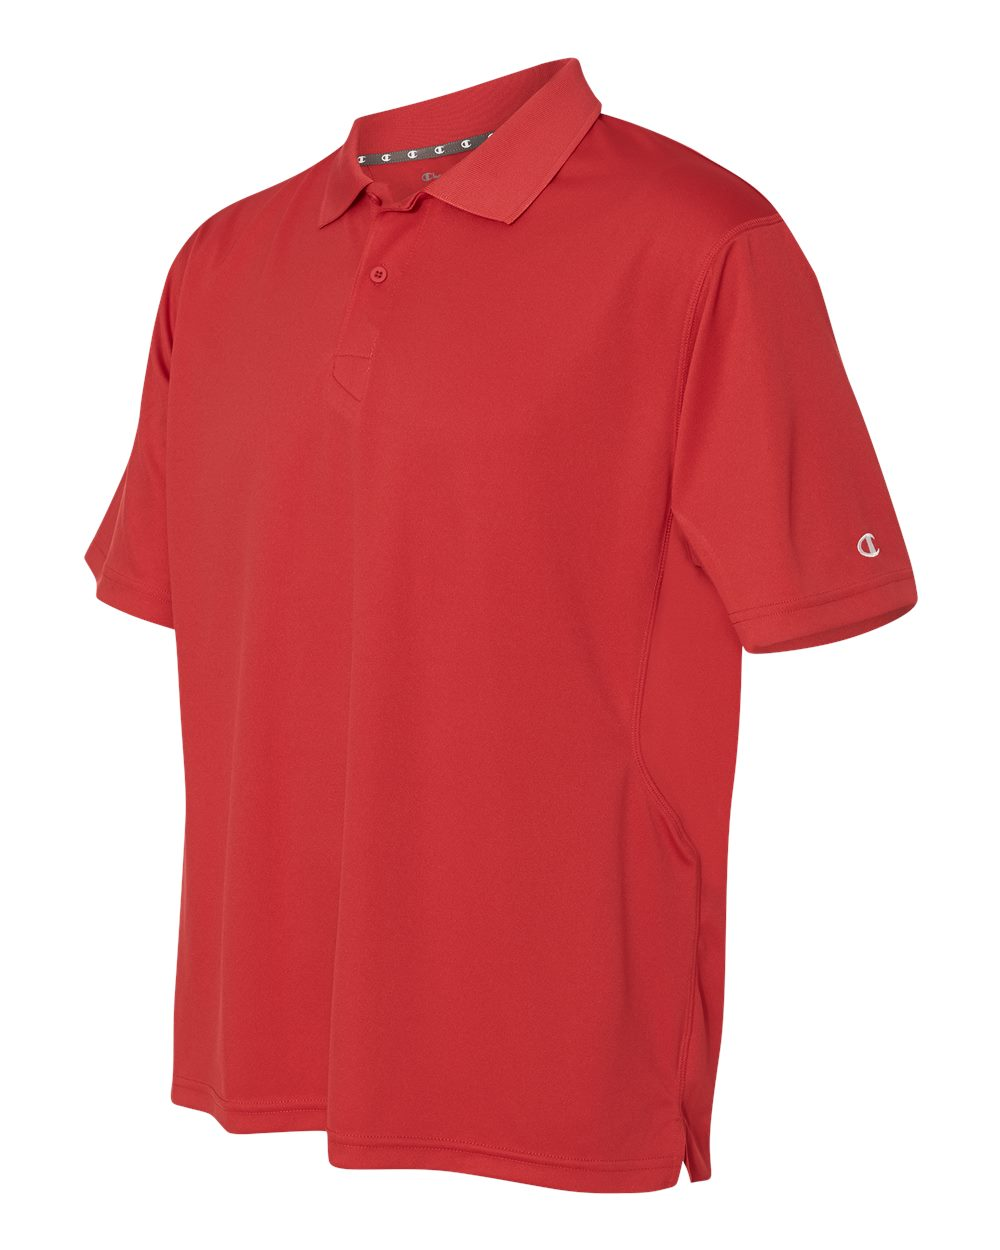 cfe13ffa1 ITEM NAME: CHAMPION 21484 WOMEN'S ULTIMATE DOUBLE DRY SHORT SLEEVE  PERFORMANCE SPORT SHIRT – H132